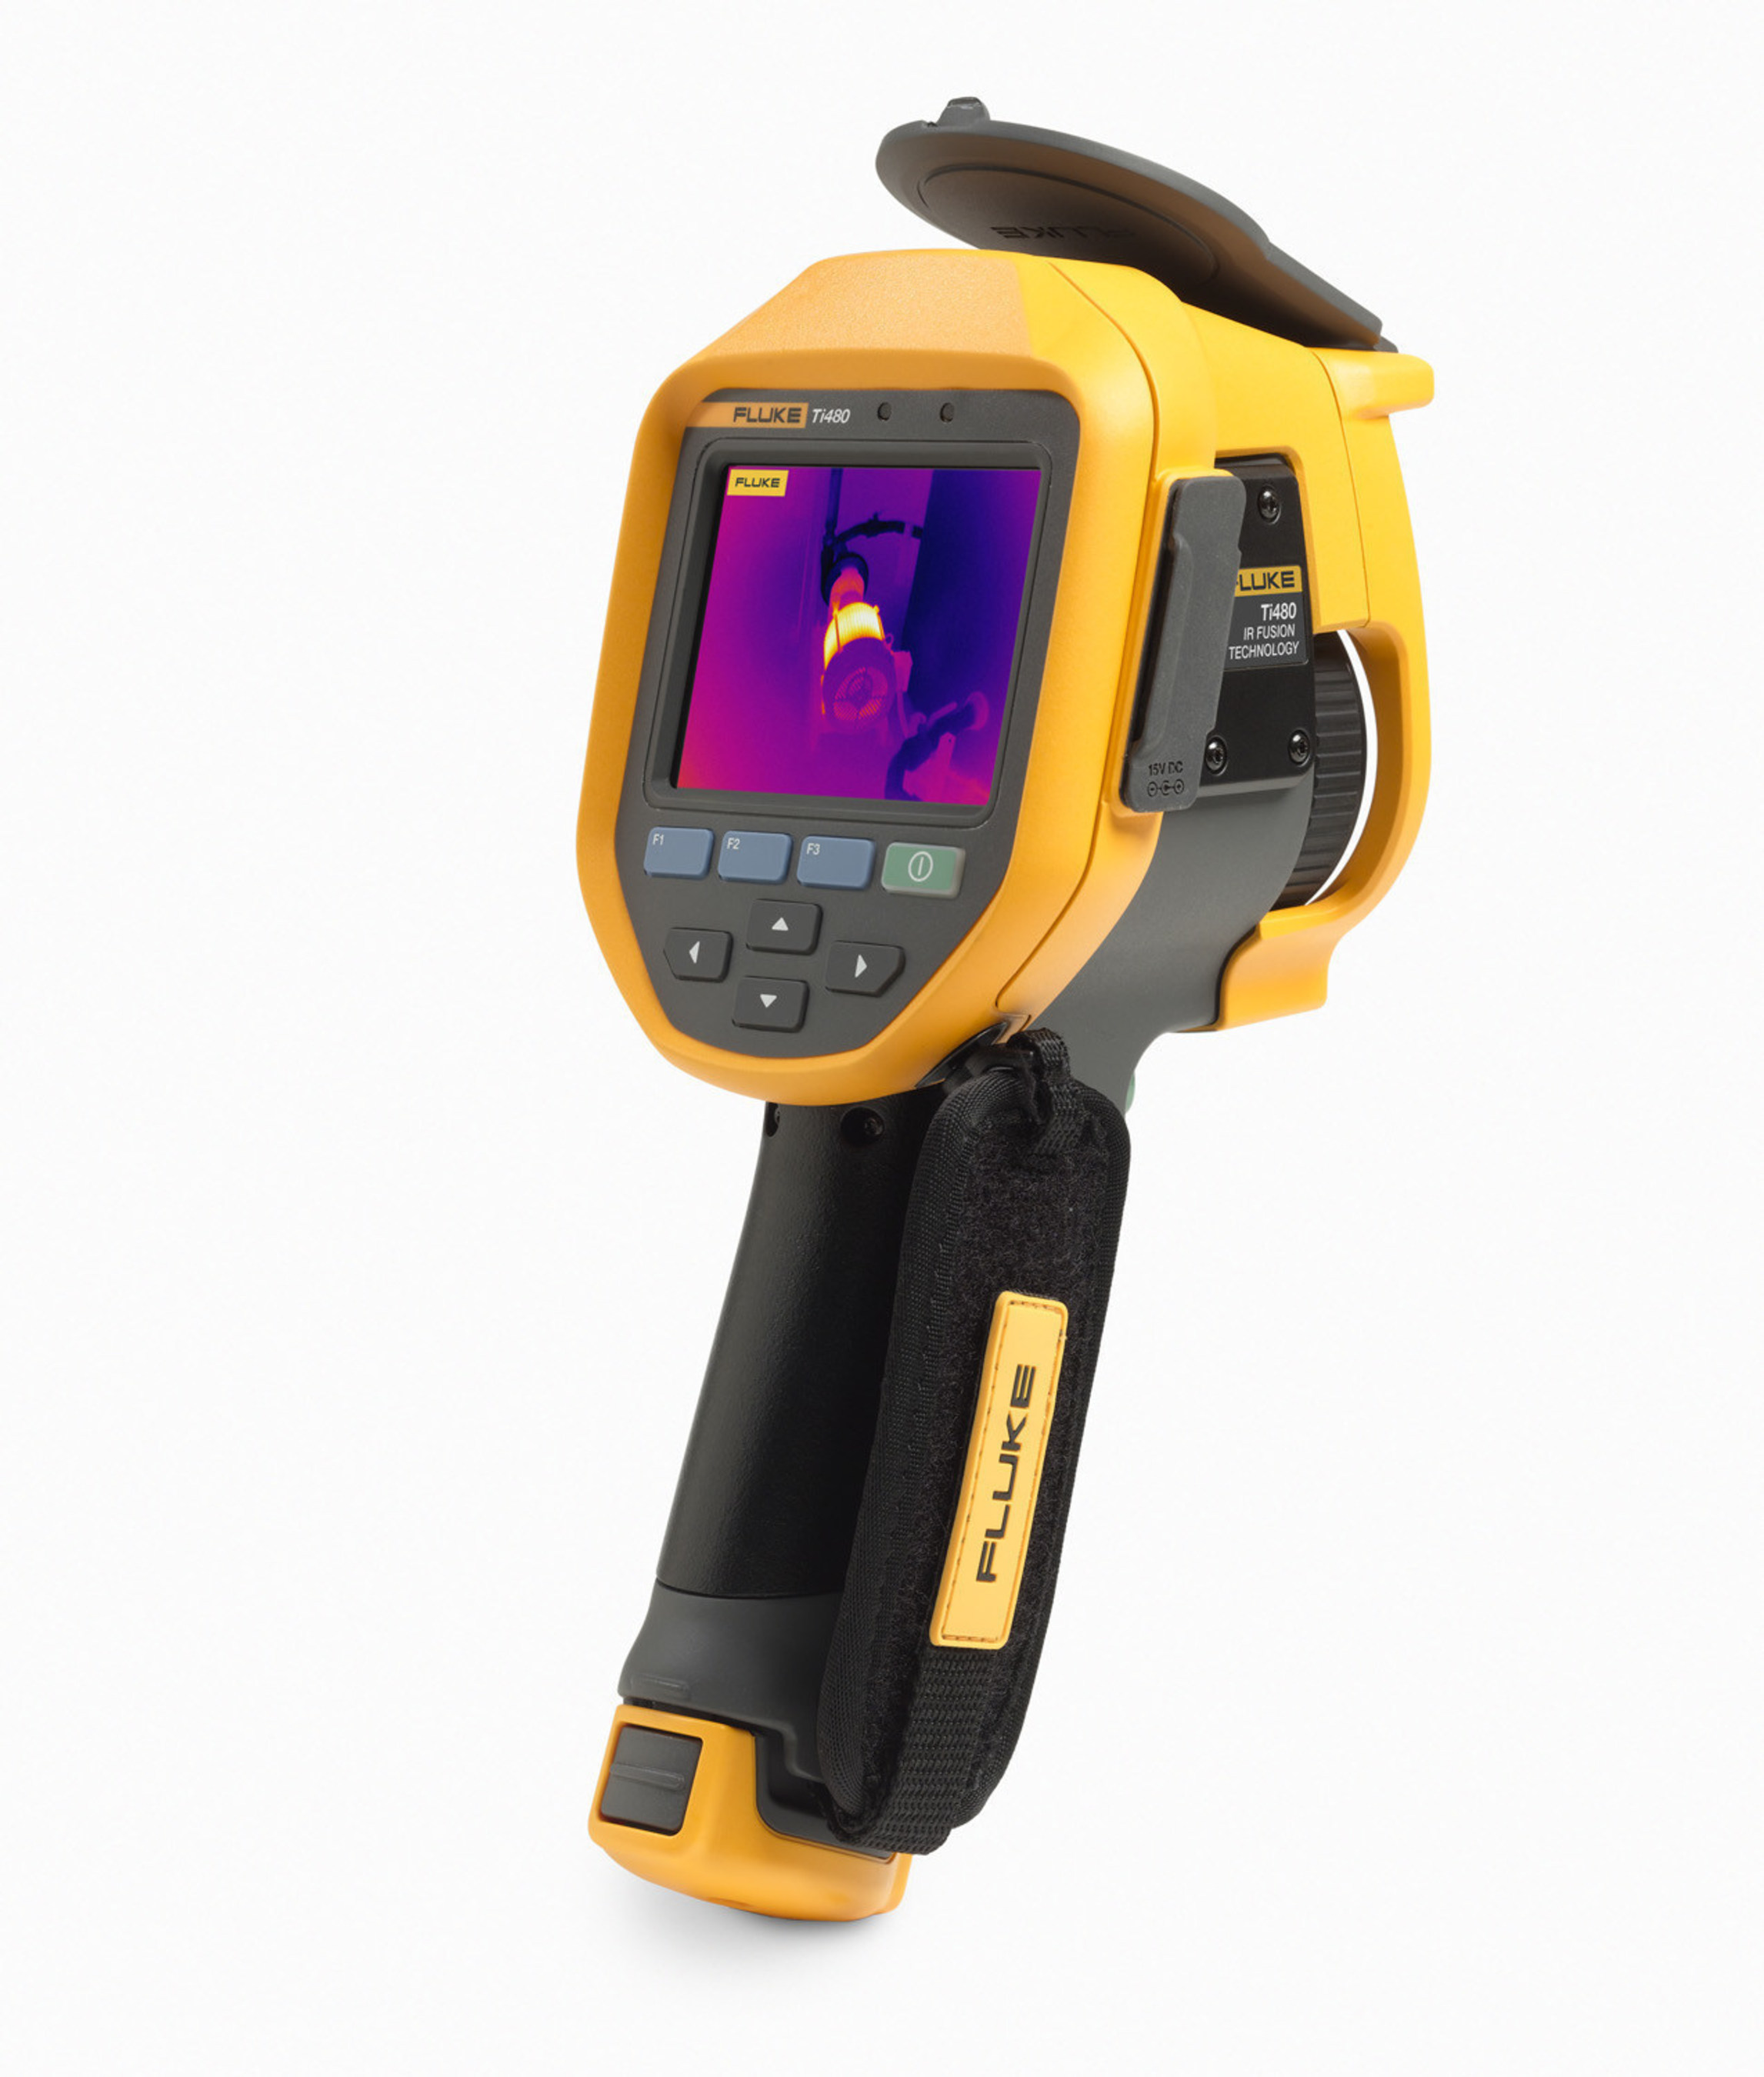 With the Ti480 Infrared Camera, Fluke introduces 640 x 480 resolution into a rugged, pistol-grip form factor. The camera provides fast, one-handed operation to perform multiple inspections quickly and accurately.